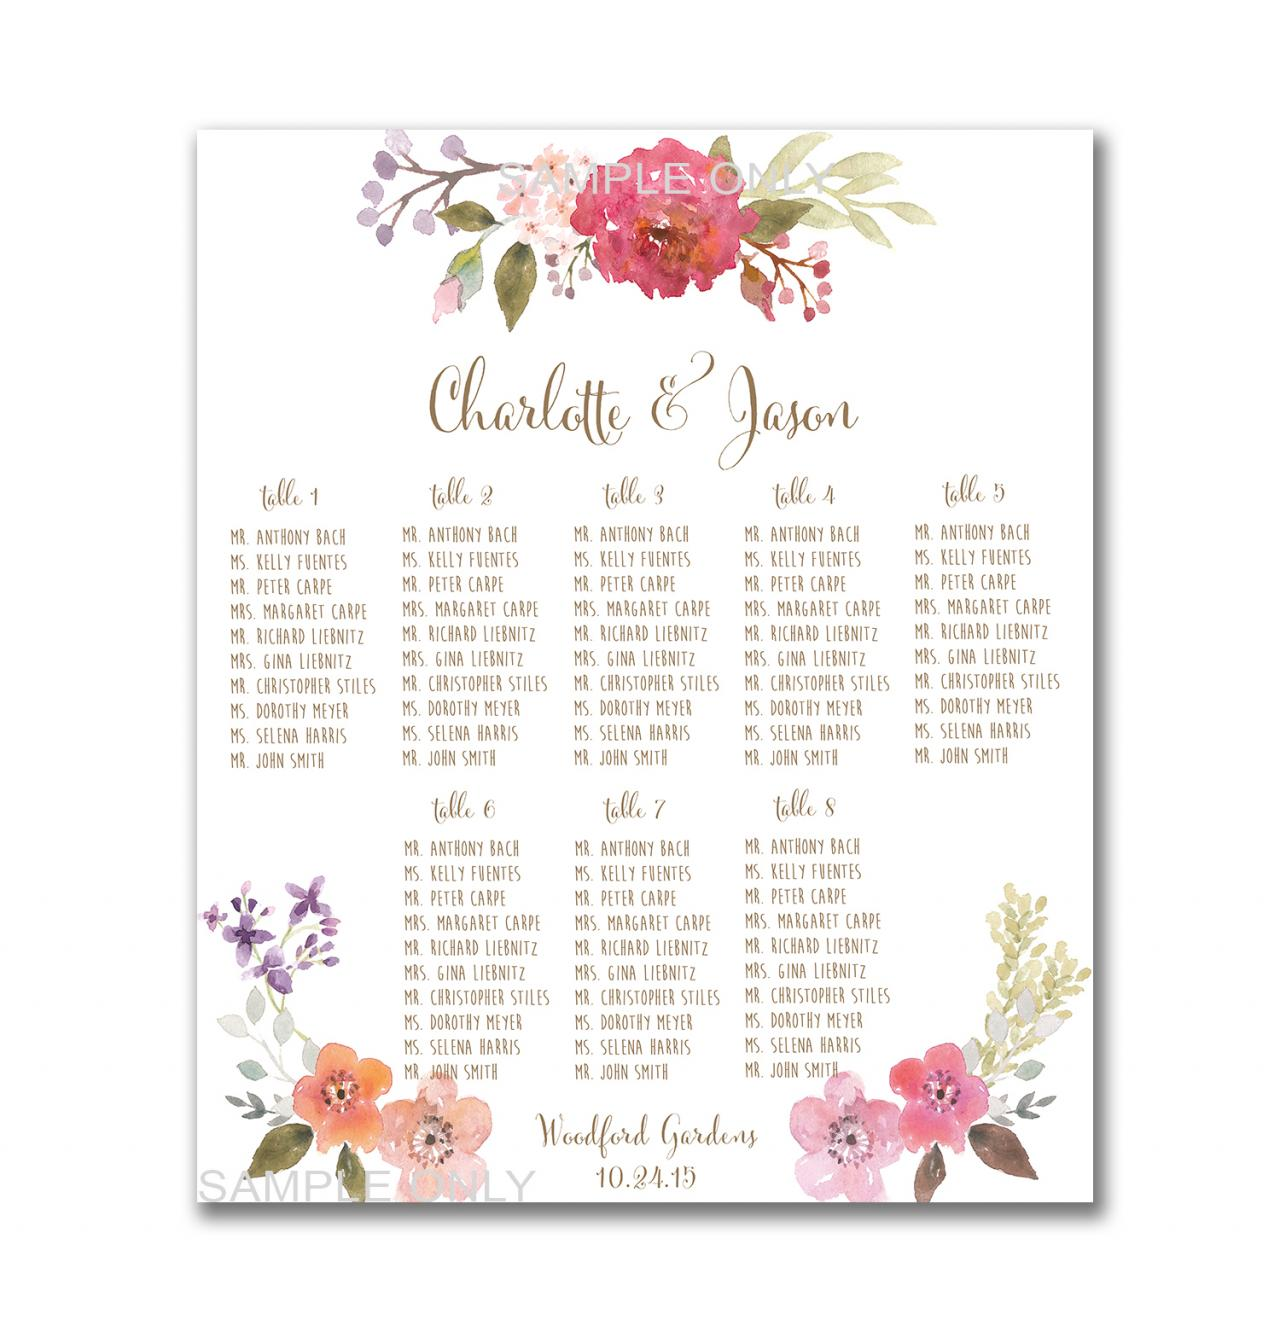 Wedding Table Seating Chart PRINTABLE - 50 - 130 Guests, Customized ...